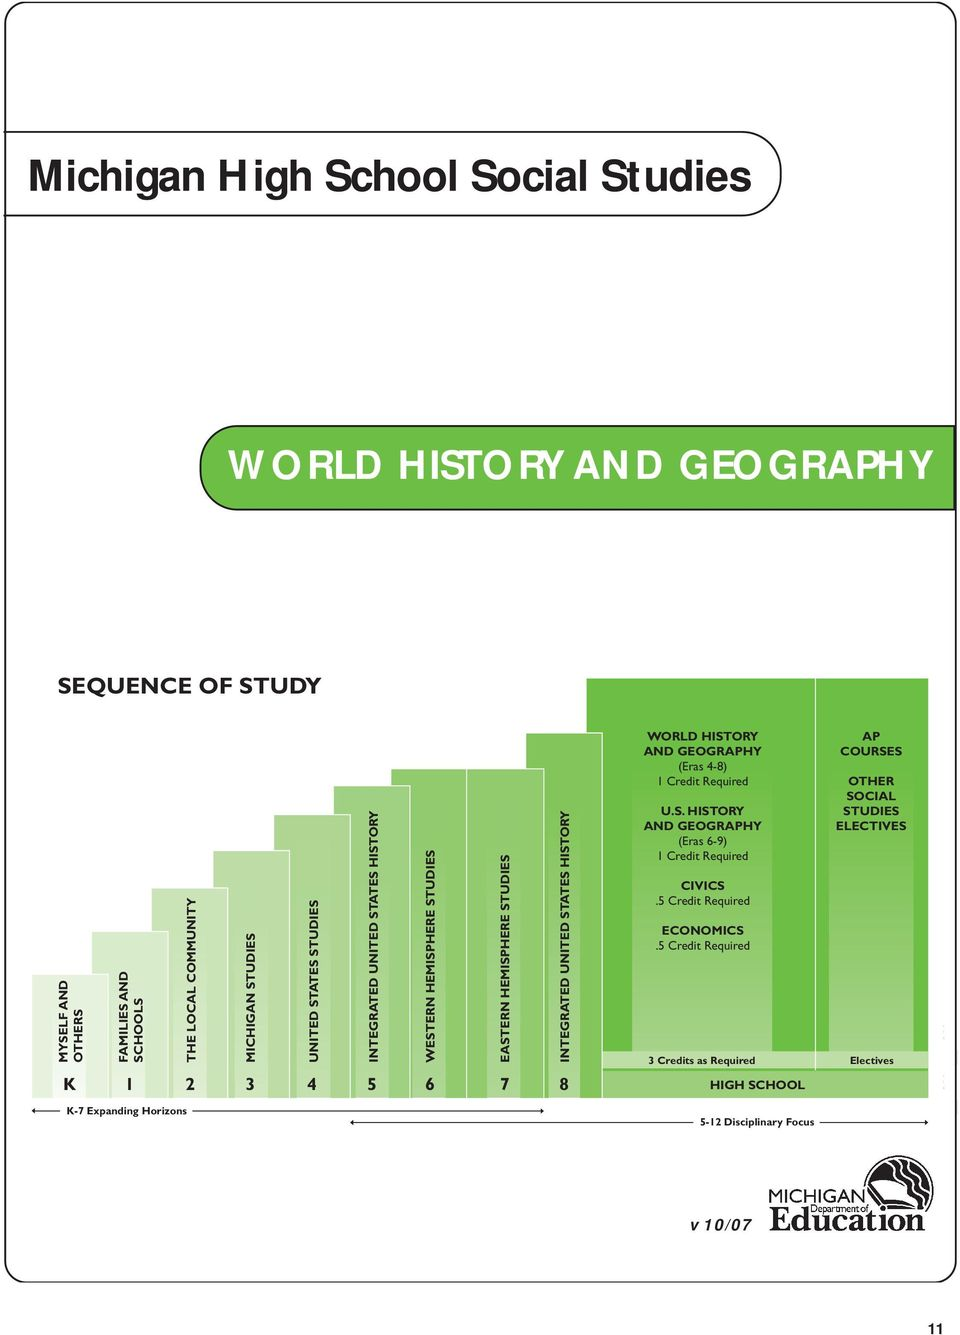 INTEGRATED UNITED STATES HISTORY WORLD HISTORY AND GEOGRAPHY (Eras 4-8) 1 Credit Required U.S. HISTORY AND GEOGRAPHY (Eras 6-9) 1 Credit Required CIVICS.